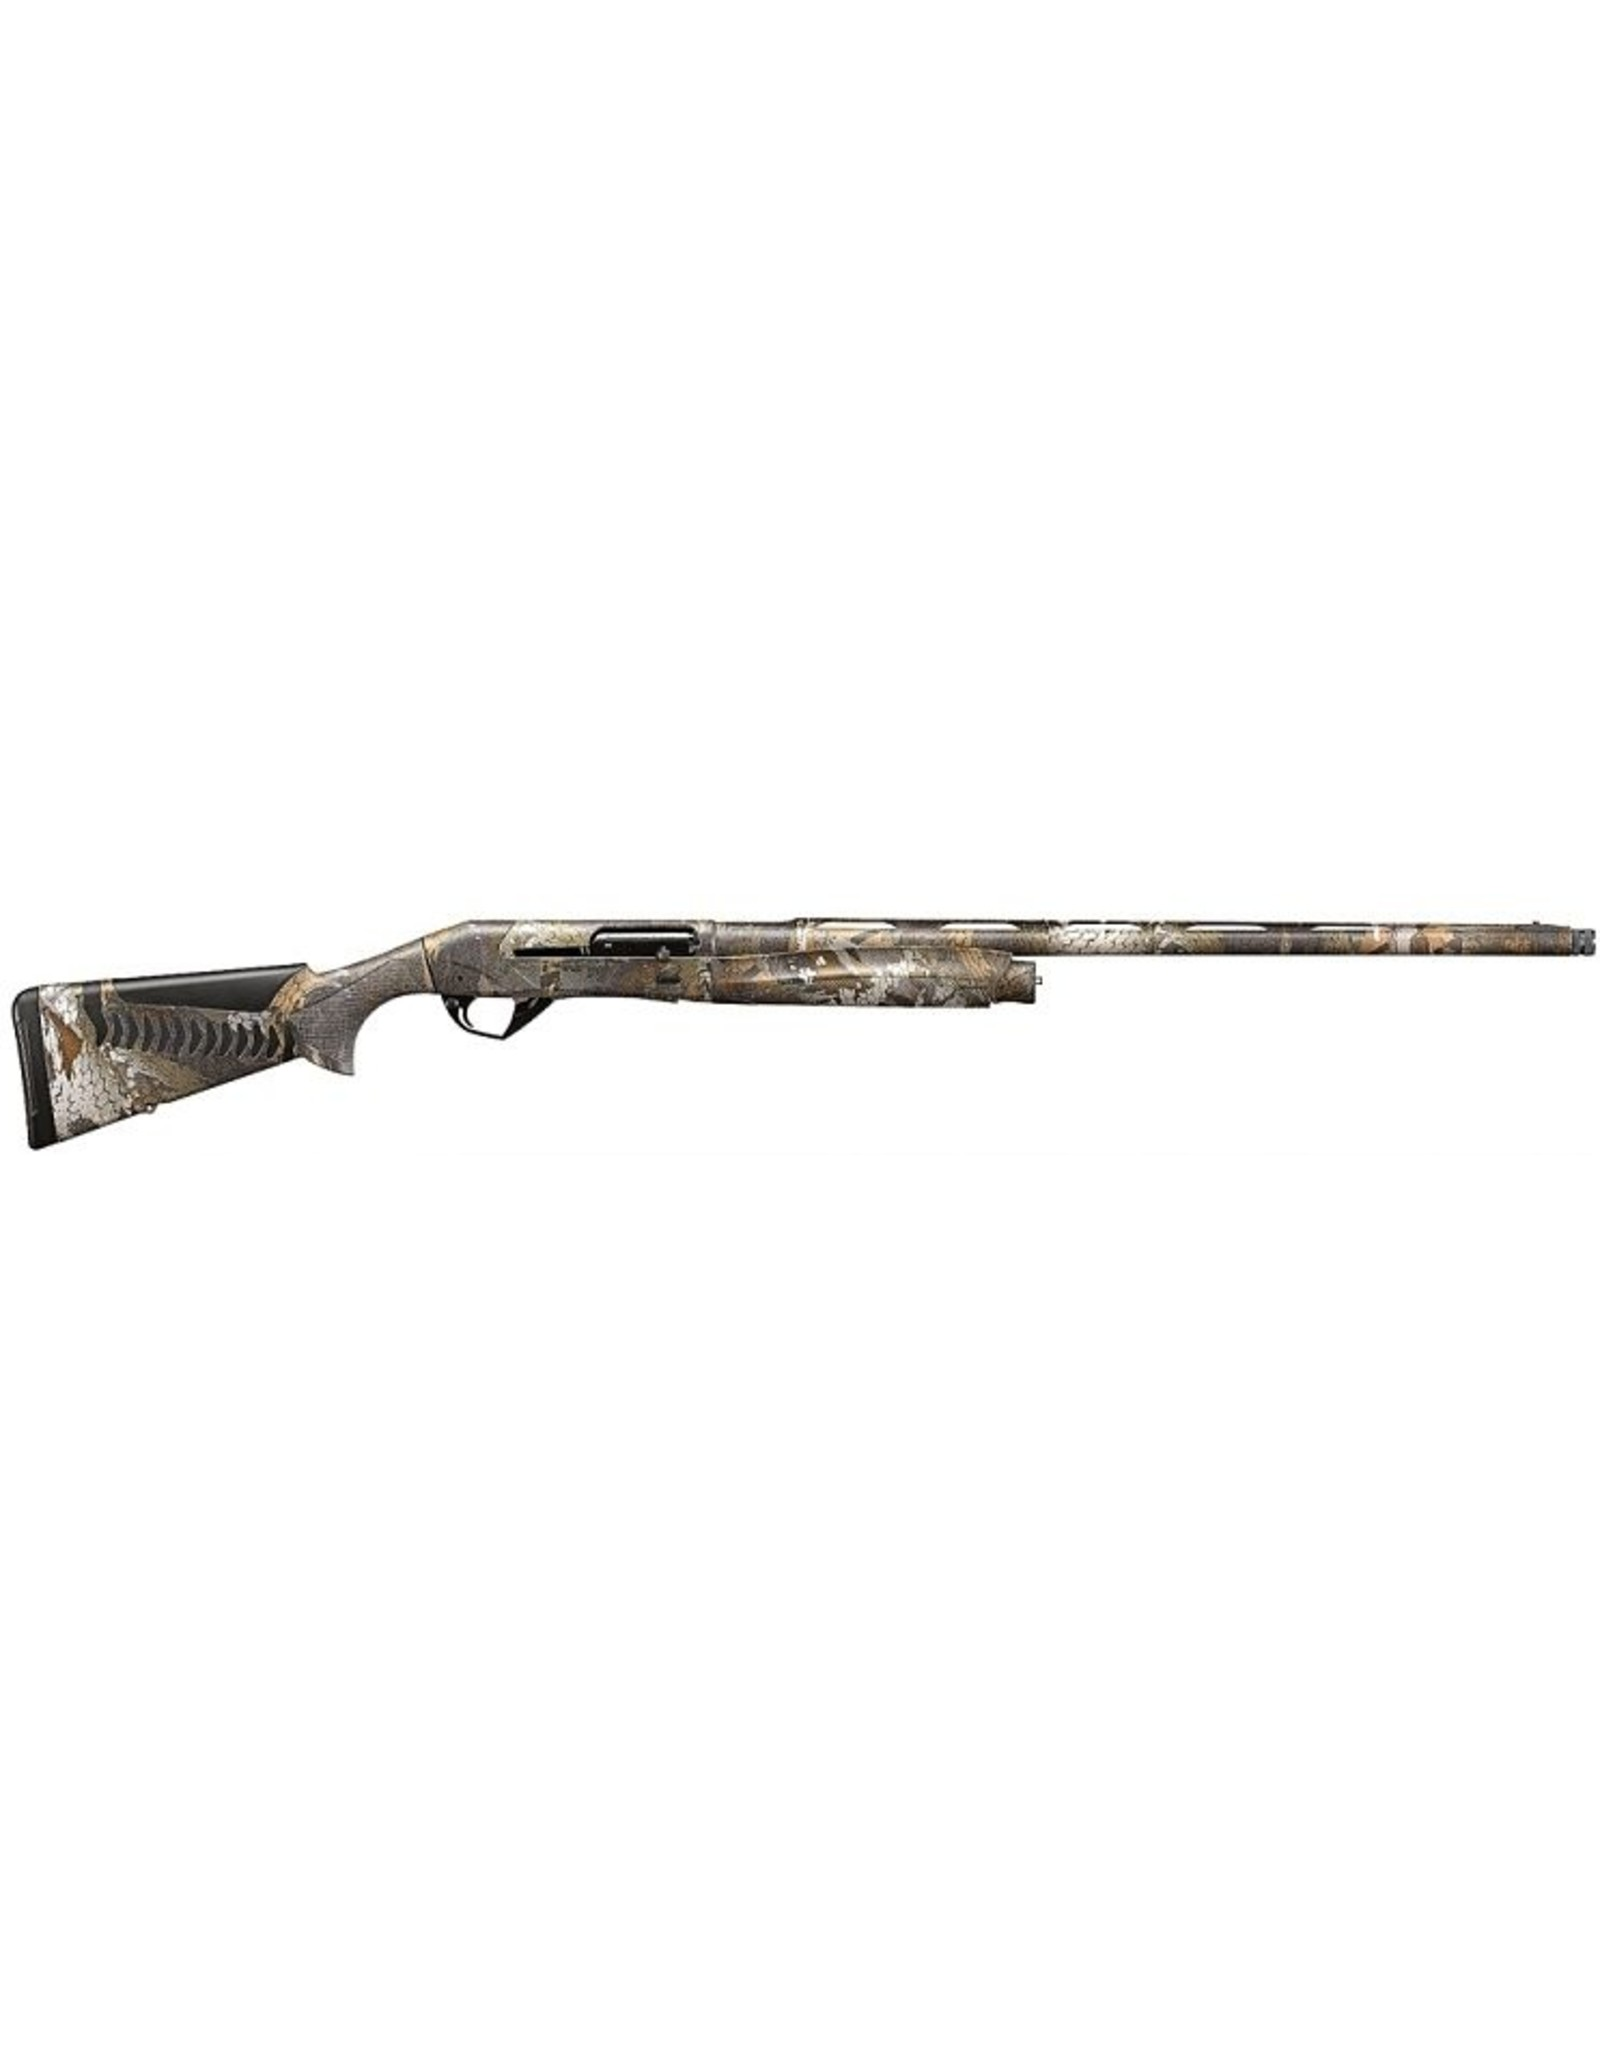 "Benelli SBE III 12 ga 28"", Optifade Camo"